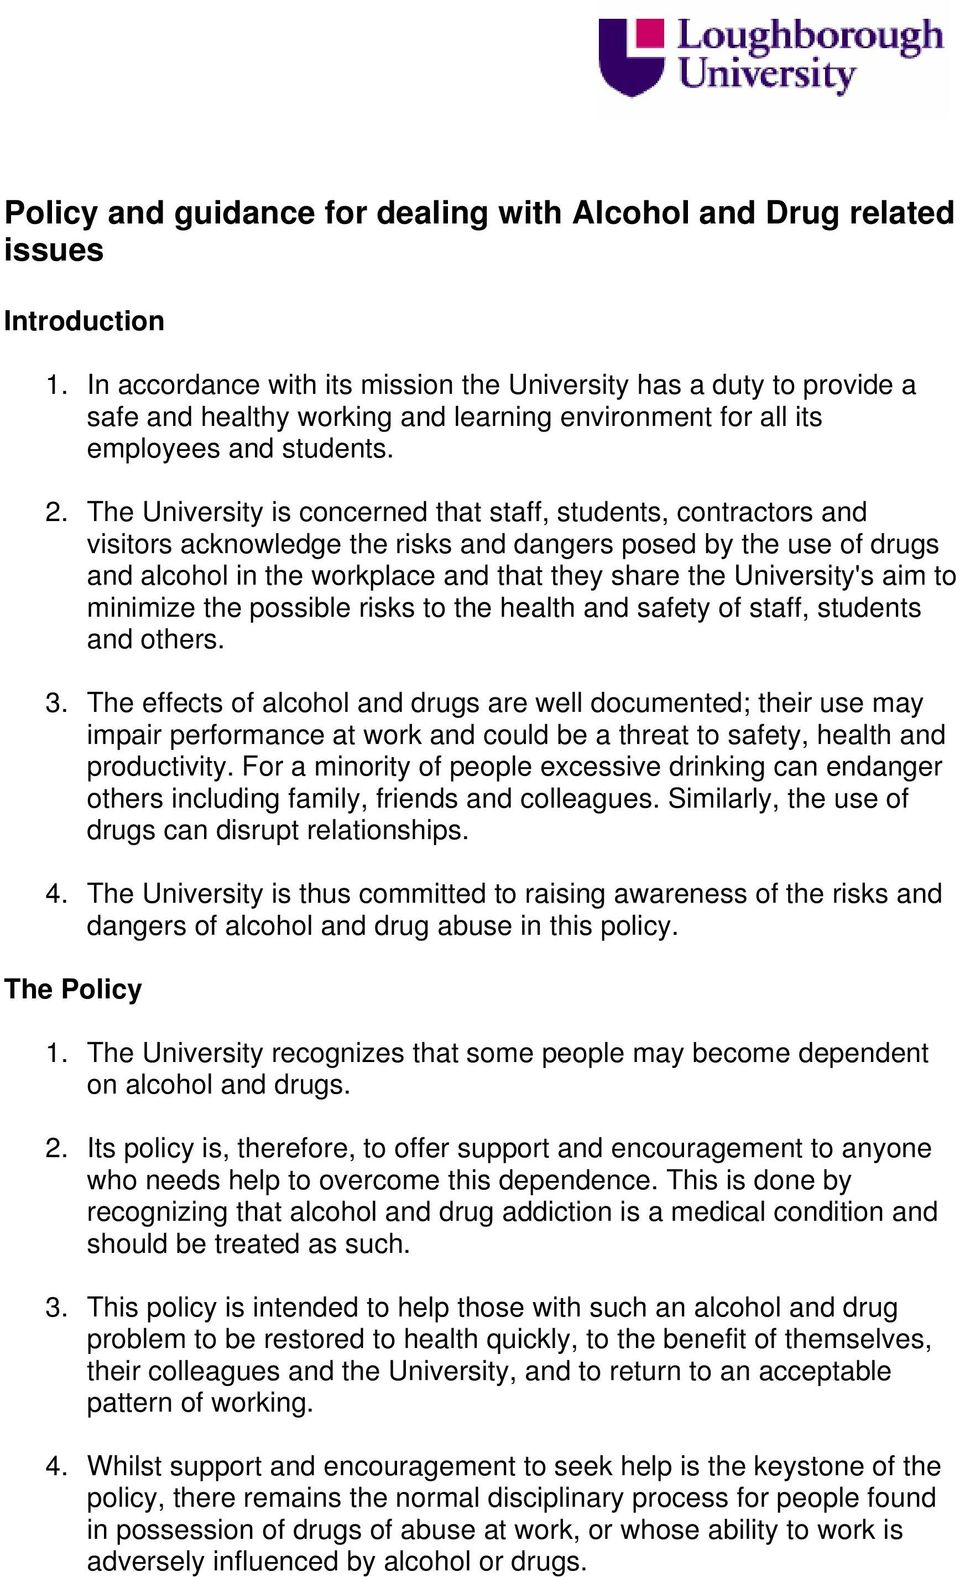 The University is concerned that staff, students, contractors and visitors acknowledge the risks and dangers posed by the use of drugs and alcohol in the workplace and that they share the